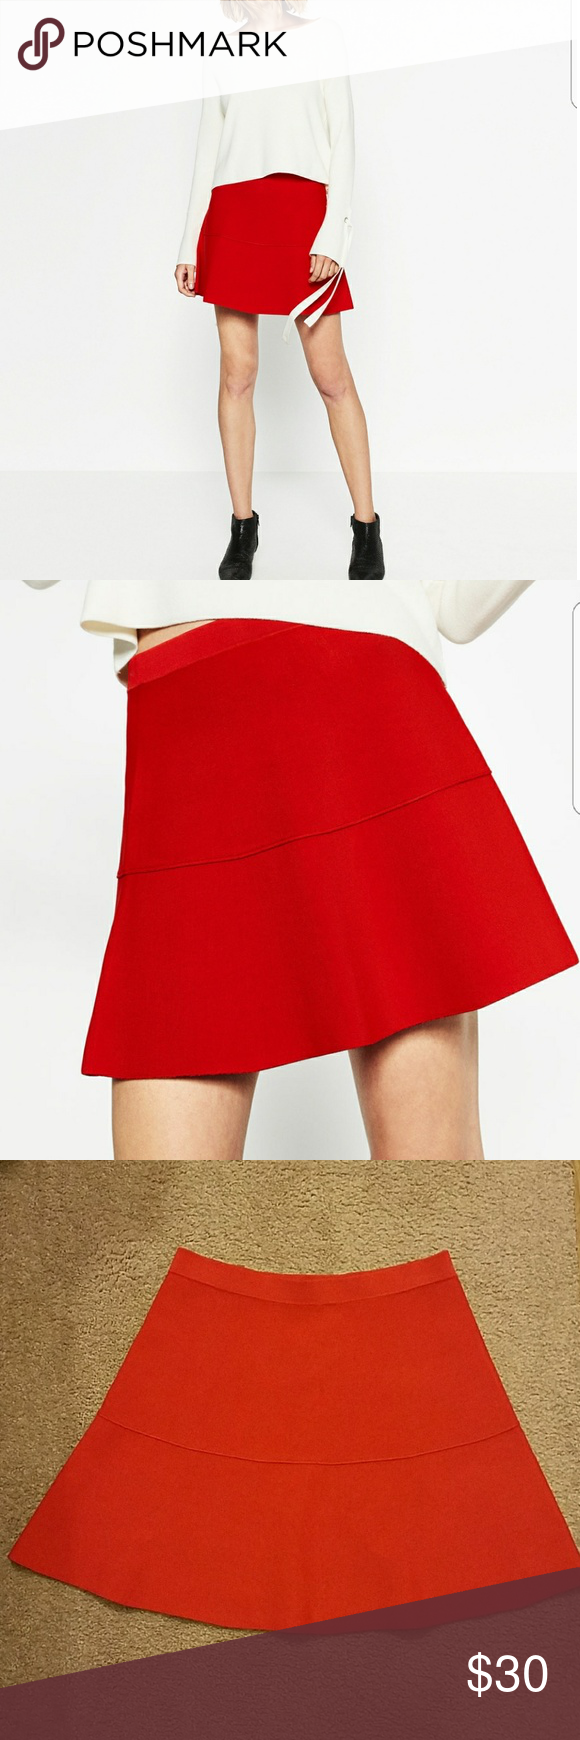 a62f826c8 Zara A-line knit skirt Very cute red mini skirt. You can see stitches  overall because it is a knit. Zara Skirts A-Line or Full